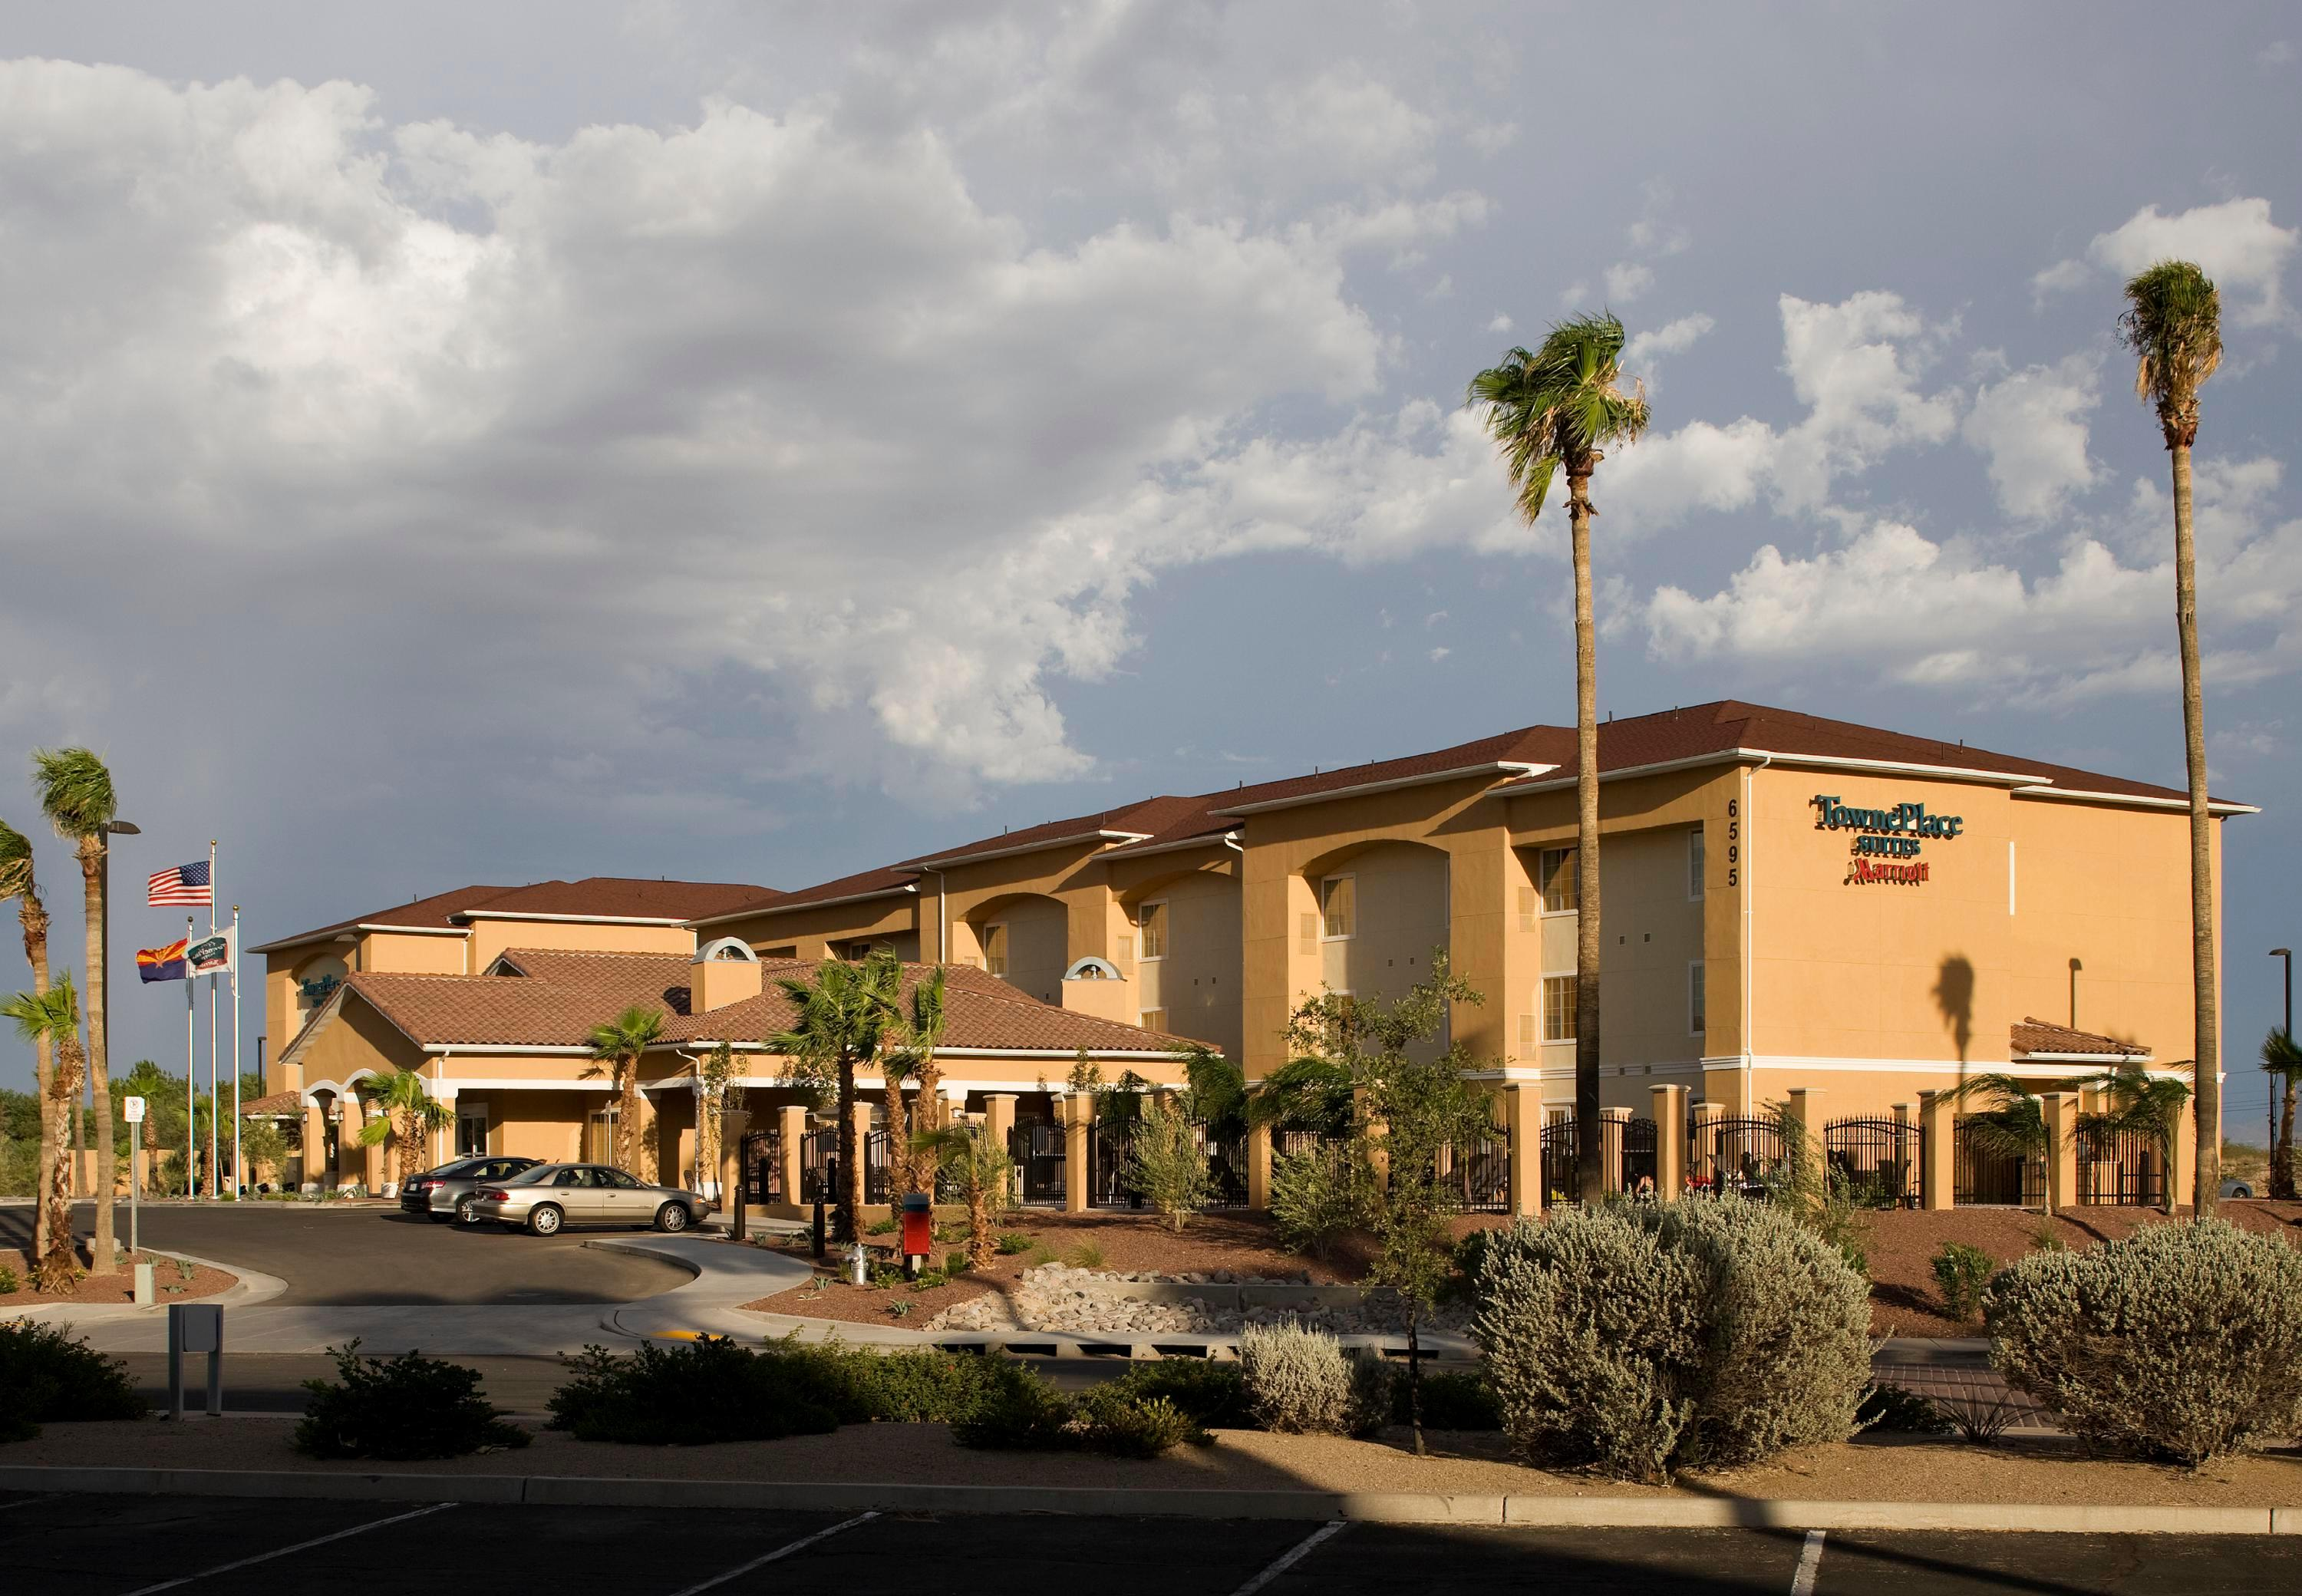 TownePlace Suites by Marriott Tucson Airport image 9